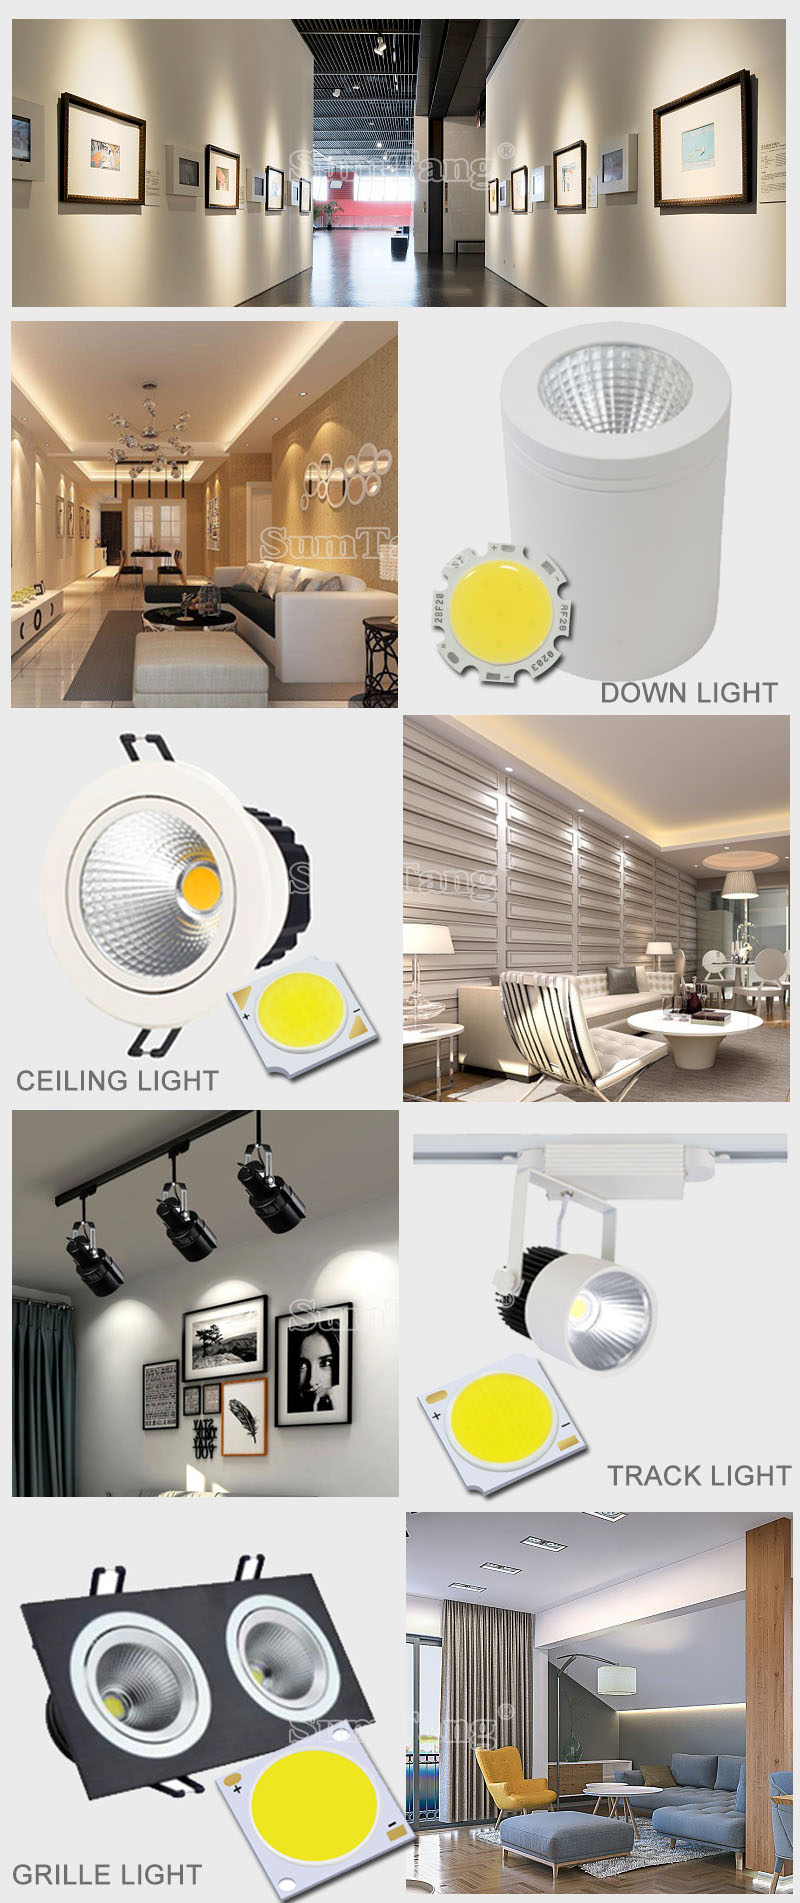 3W 5W 7W 10W Epistar Bridgelux Chinese Brand chip led COB for downlight tracking light